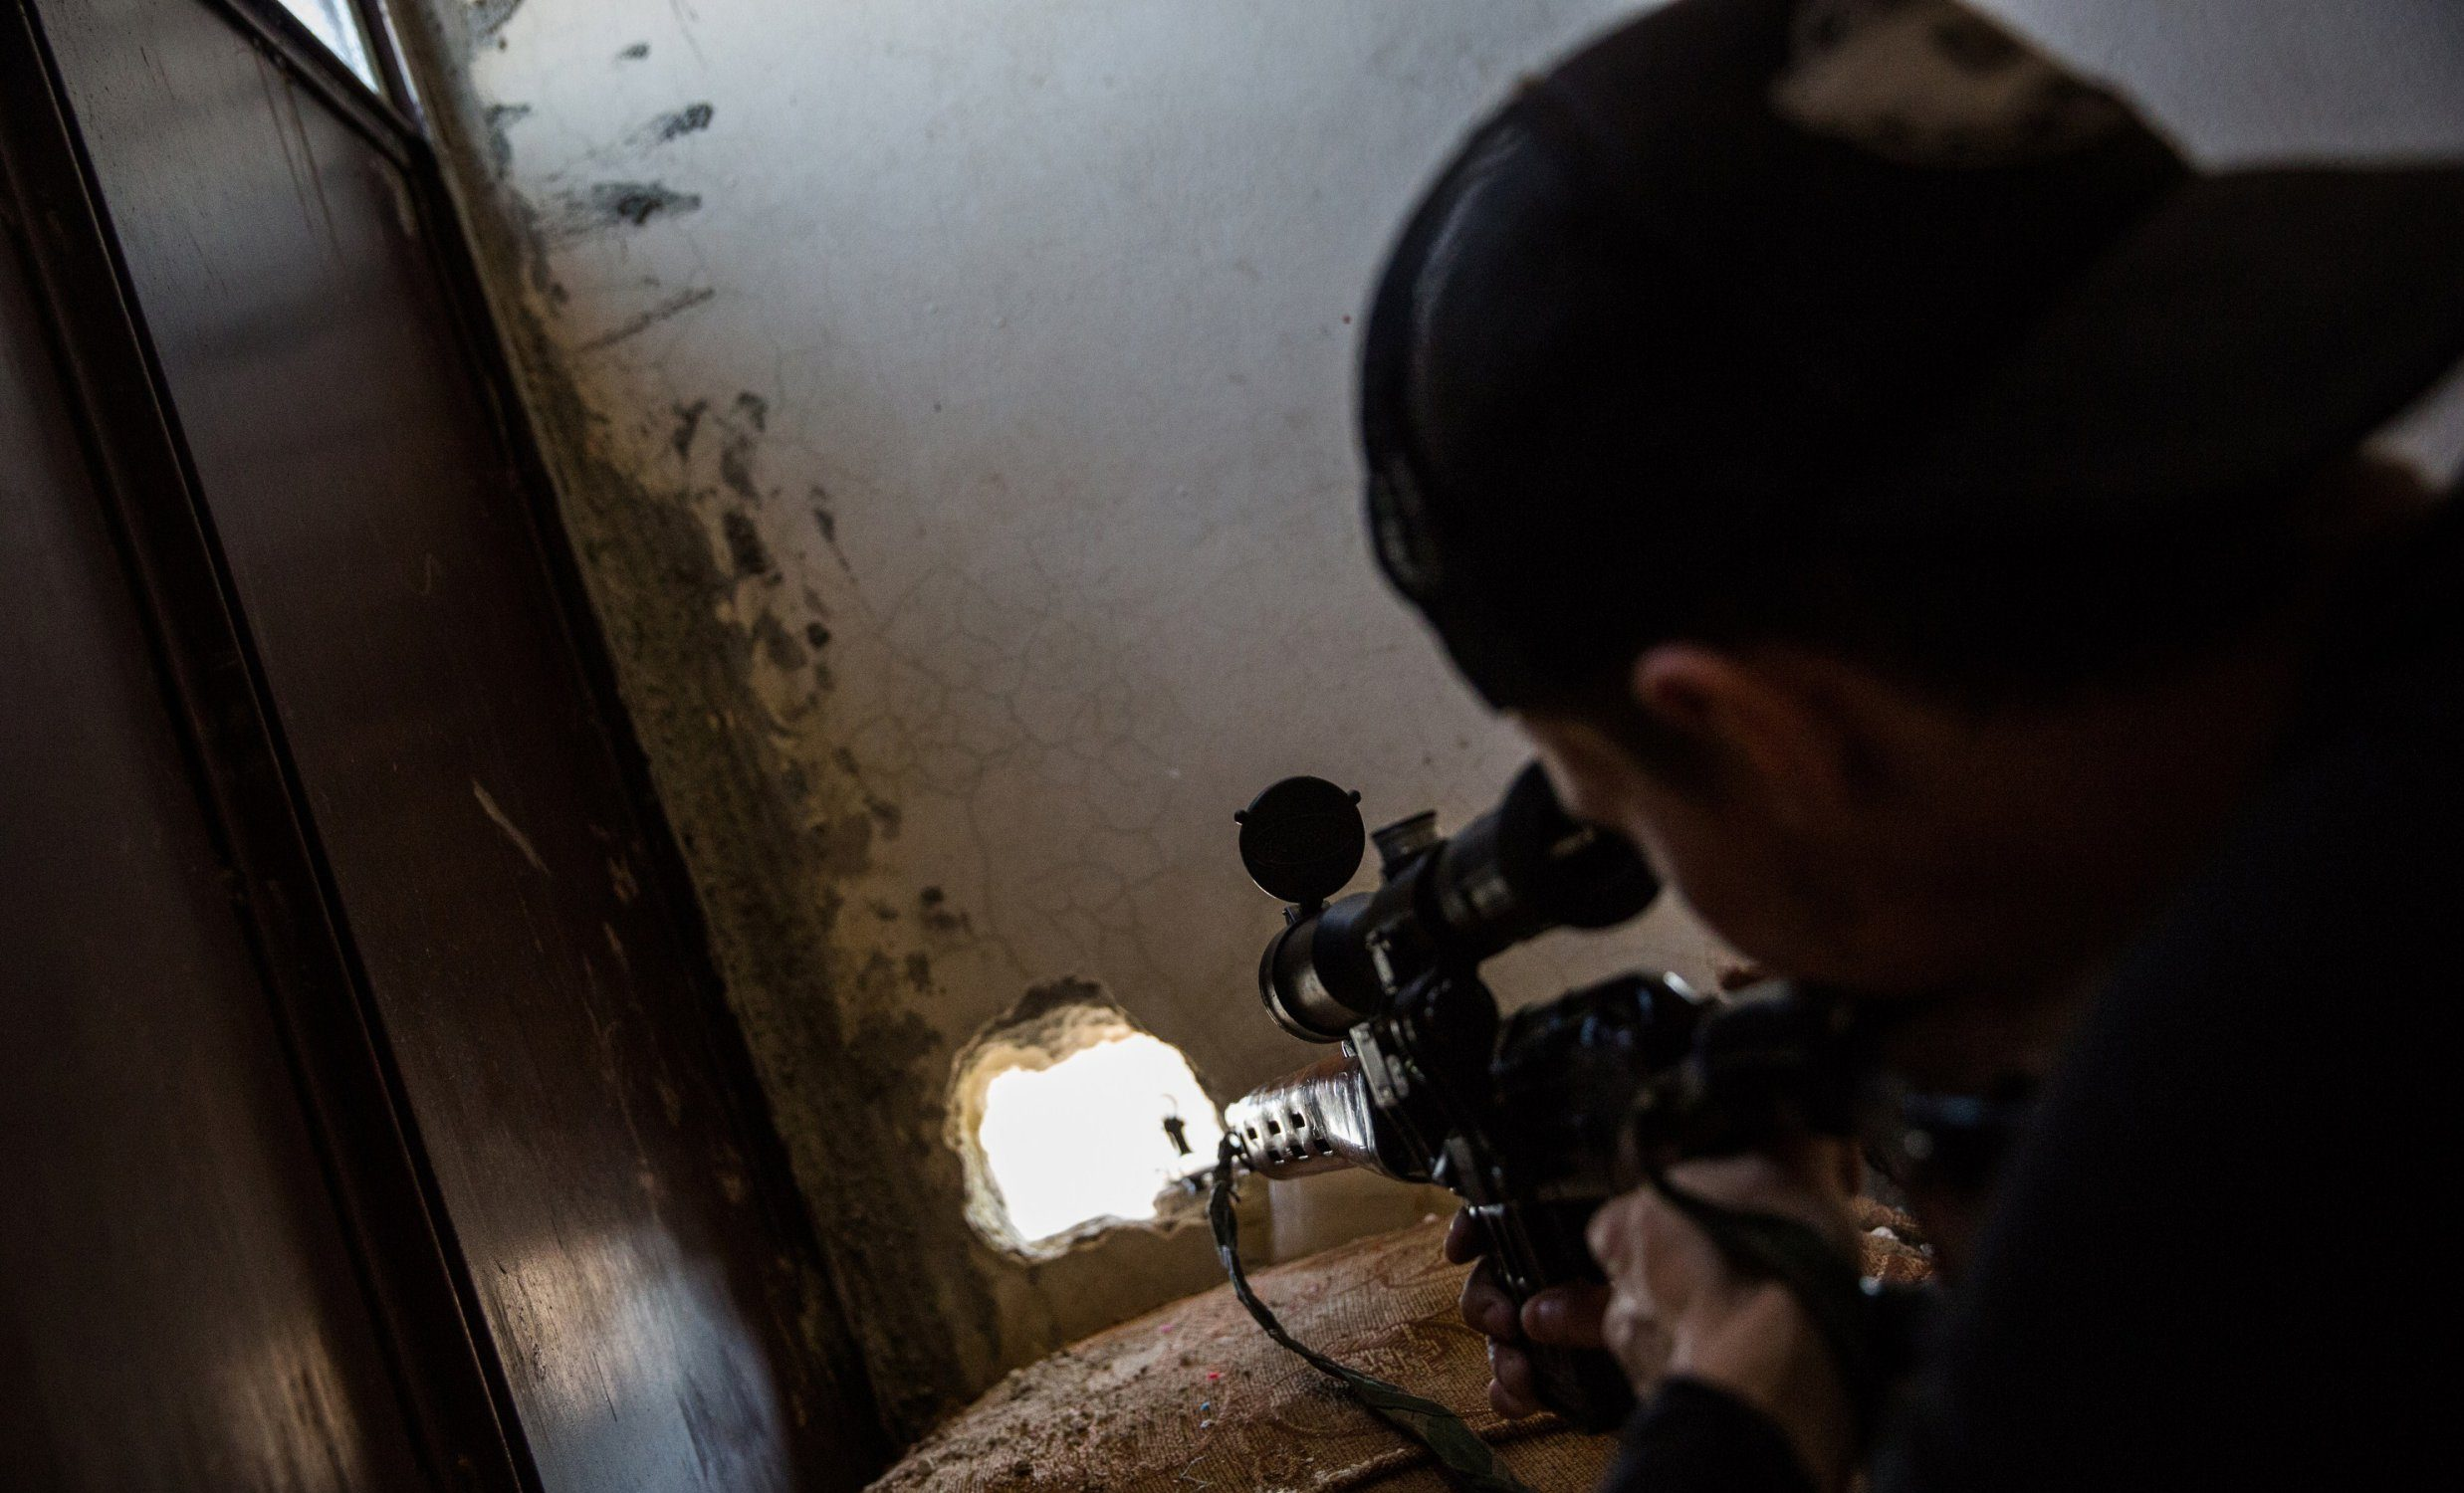 SAS sniper kills Isis chief with 'one in a million' shot from nearly a mile away